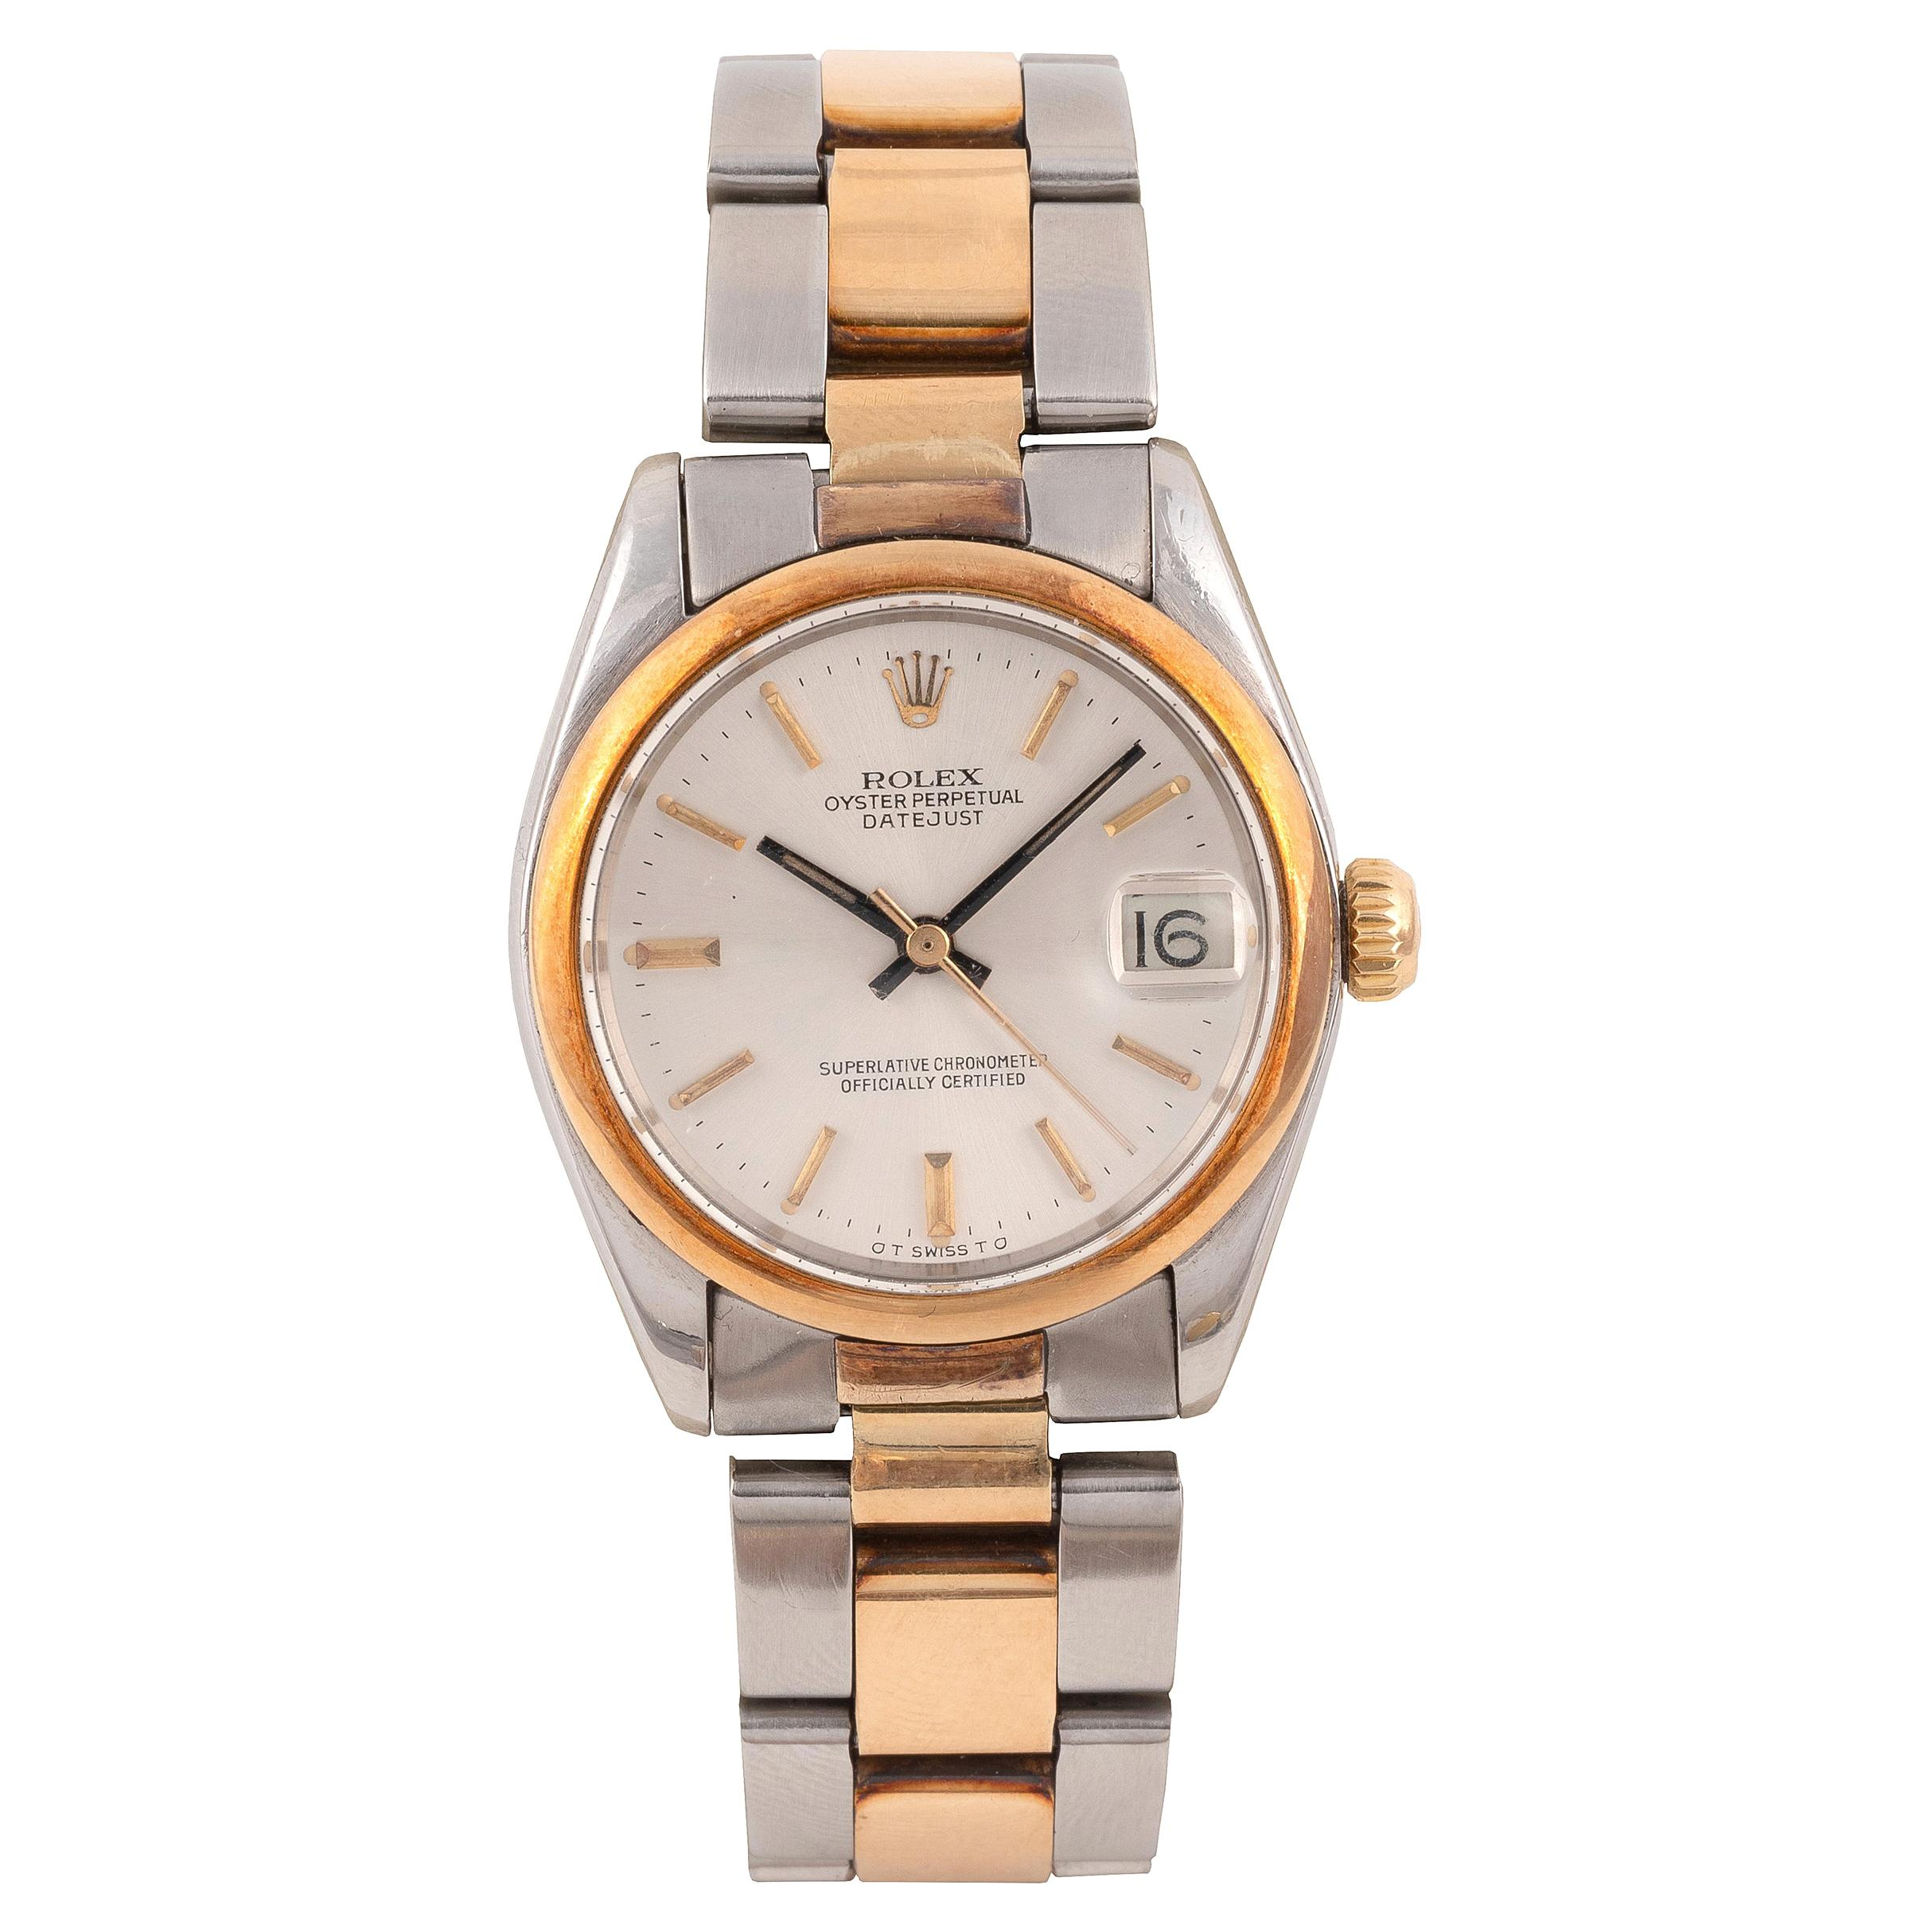 Rolex Ref. 6824 Datejust Oyster Perpetual Steel and Gold Wristwatch